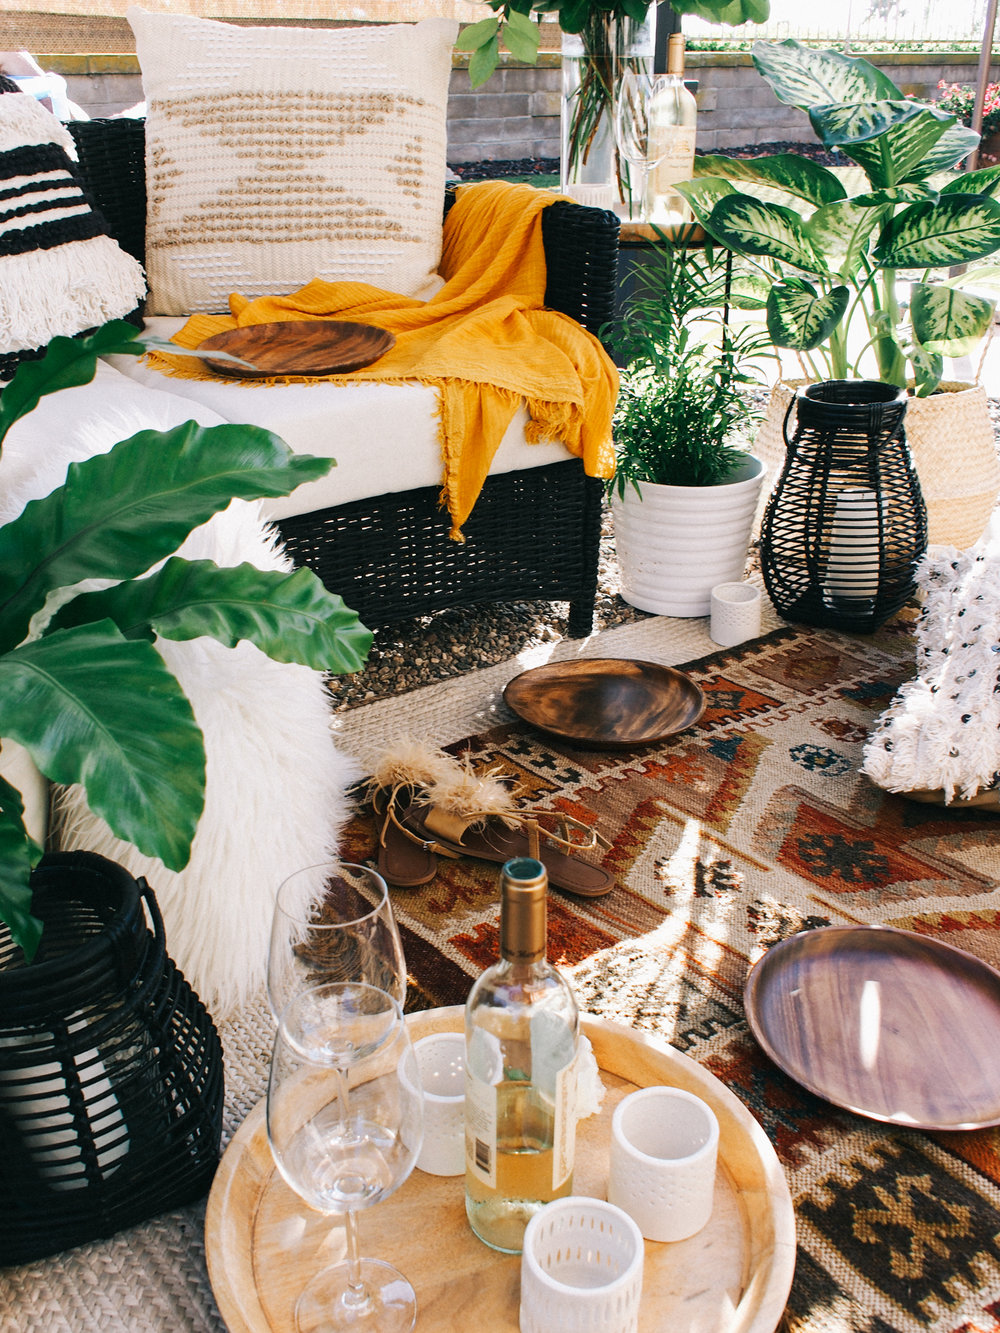 Outdoor decorating ideas for summer | A Fabulous Fete